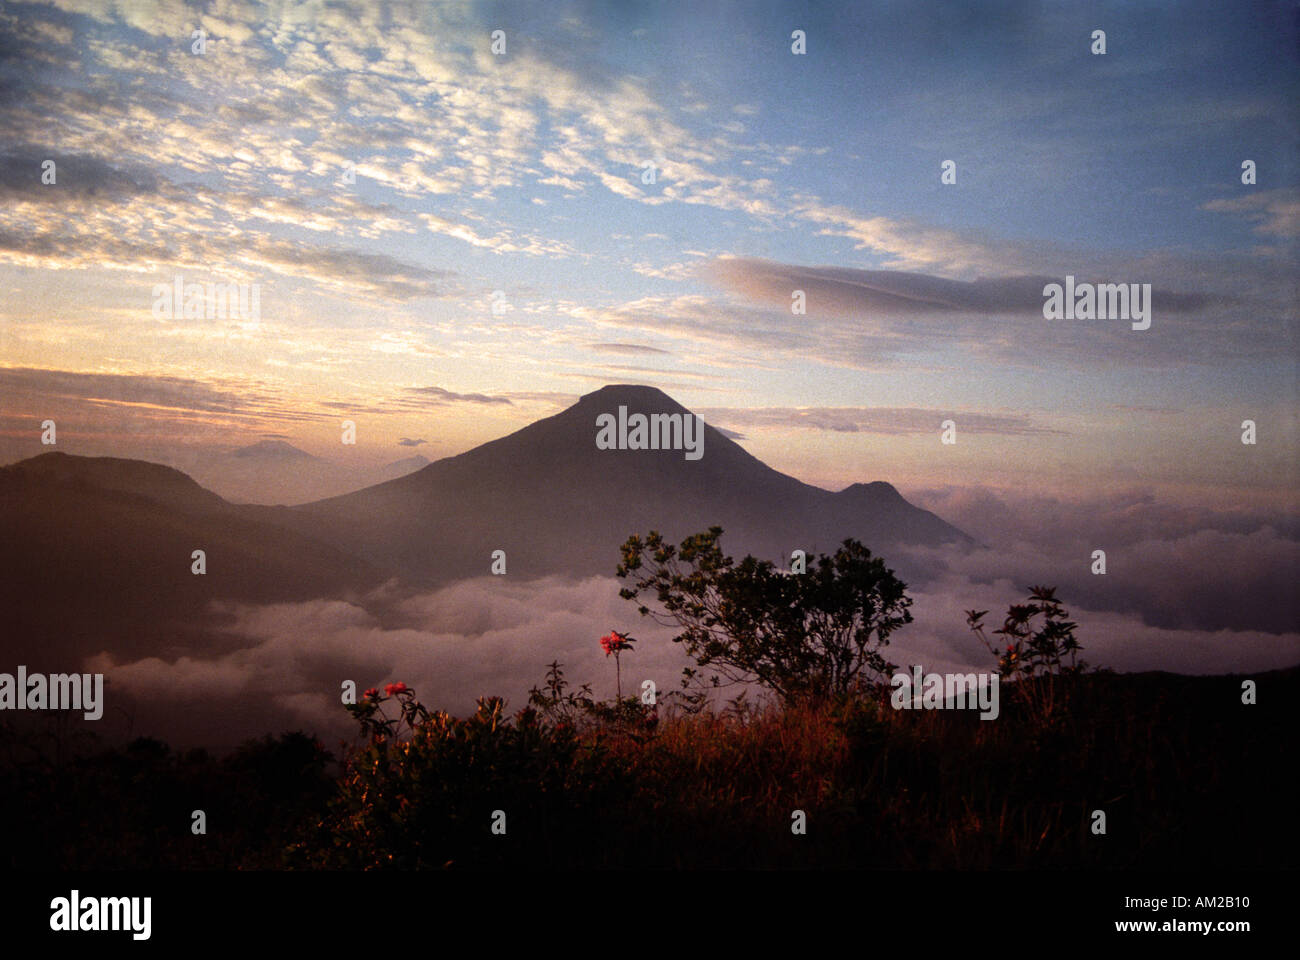 The Dieng Plateau in Central Java Mount Merapi in the distance and Gunung Sundoro in the foregroundStock Photo